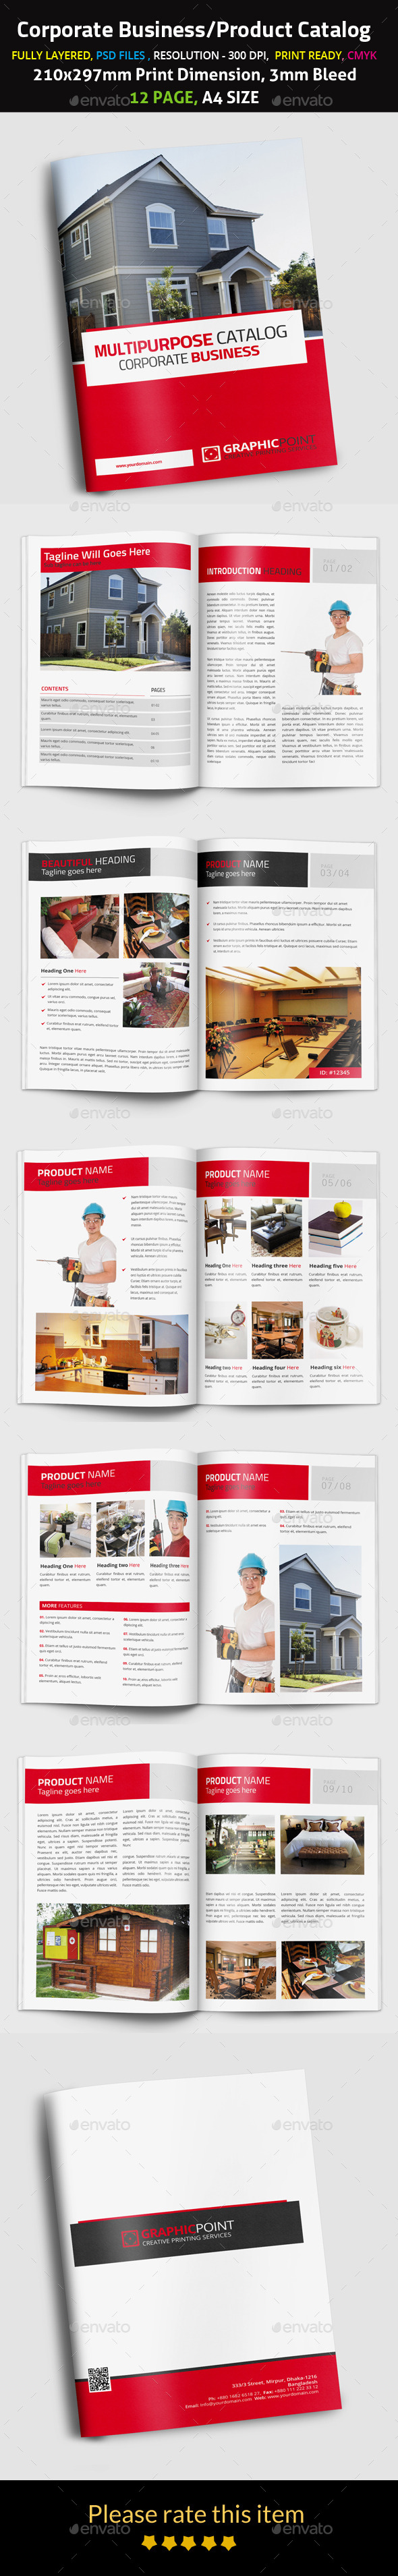 Corporate Business Product Catalog